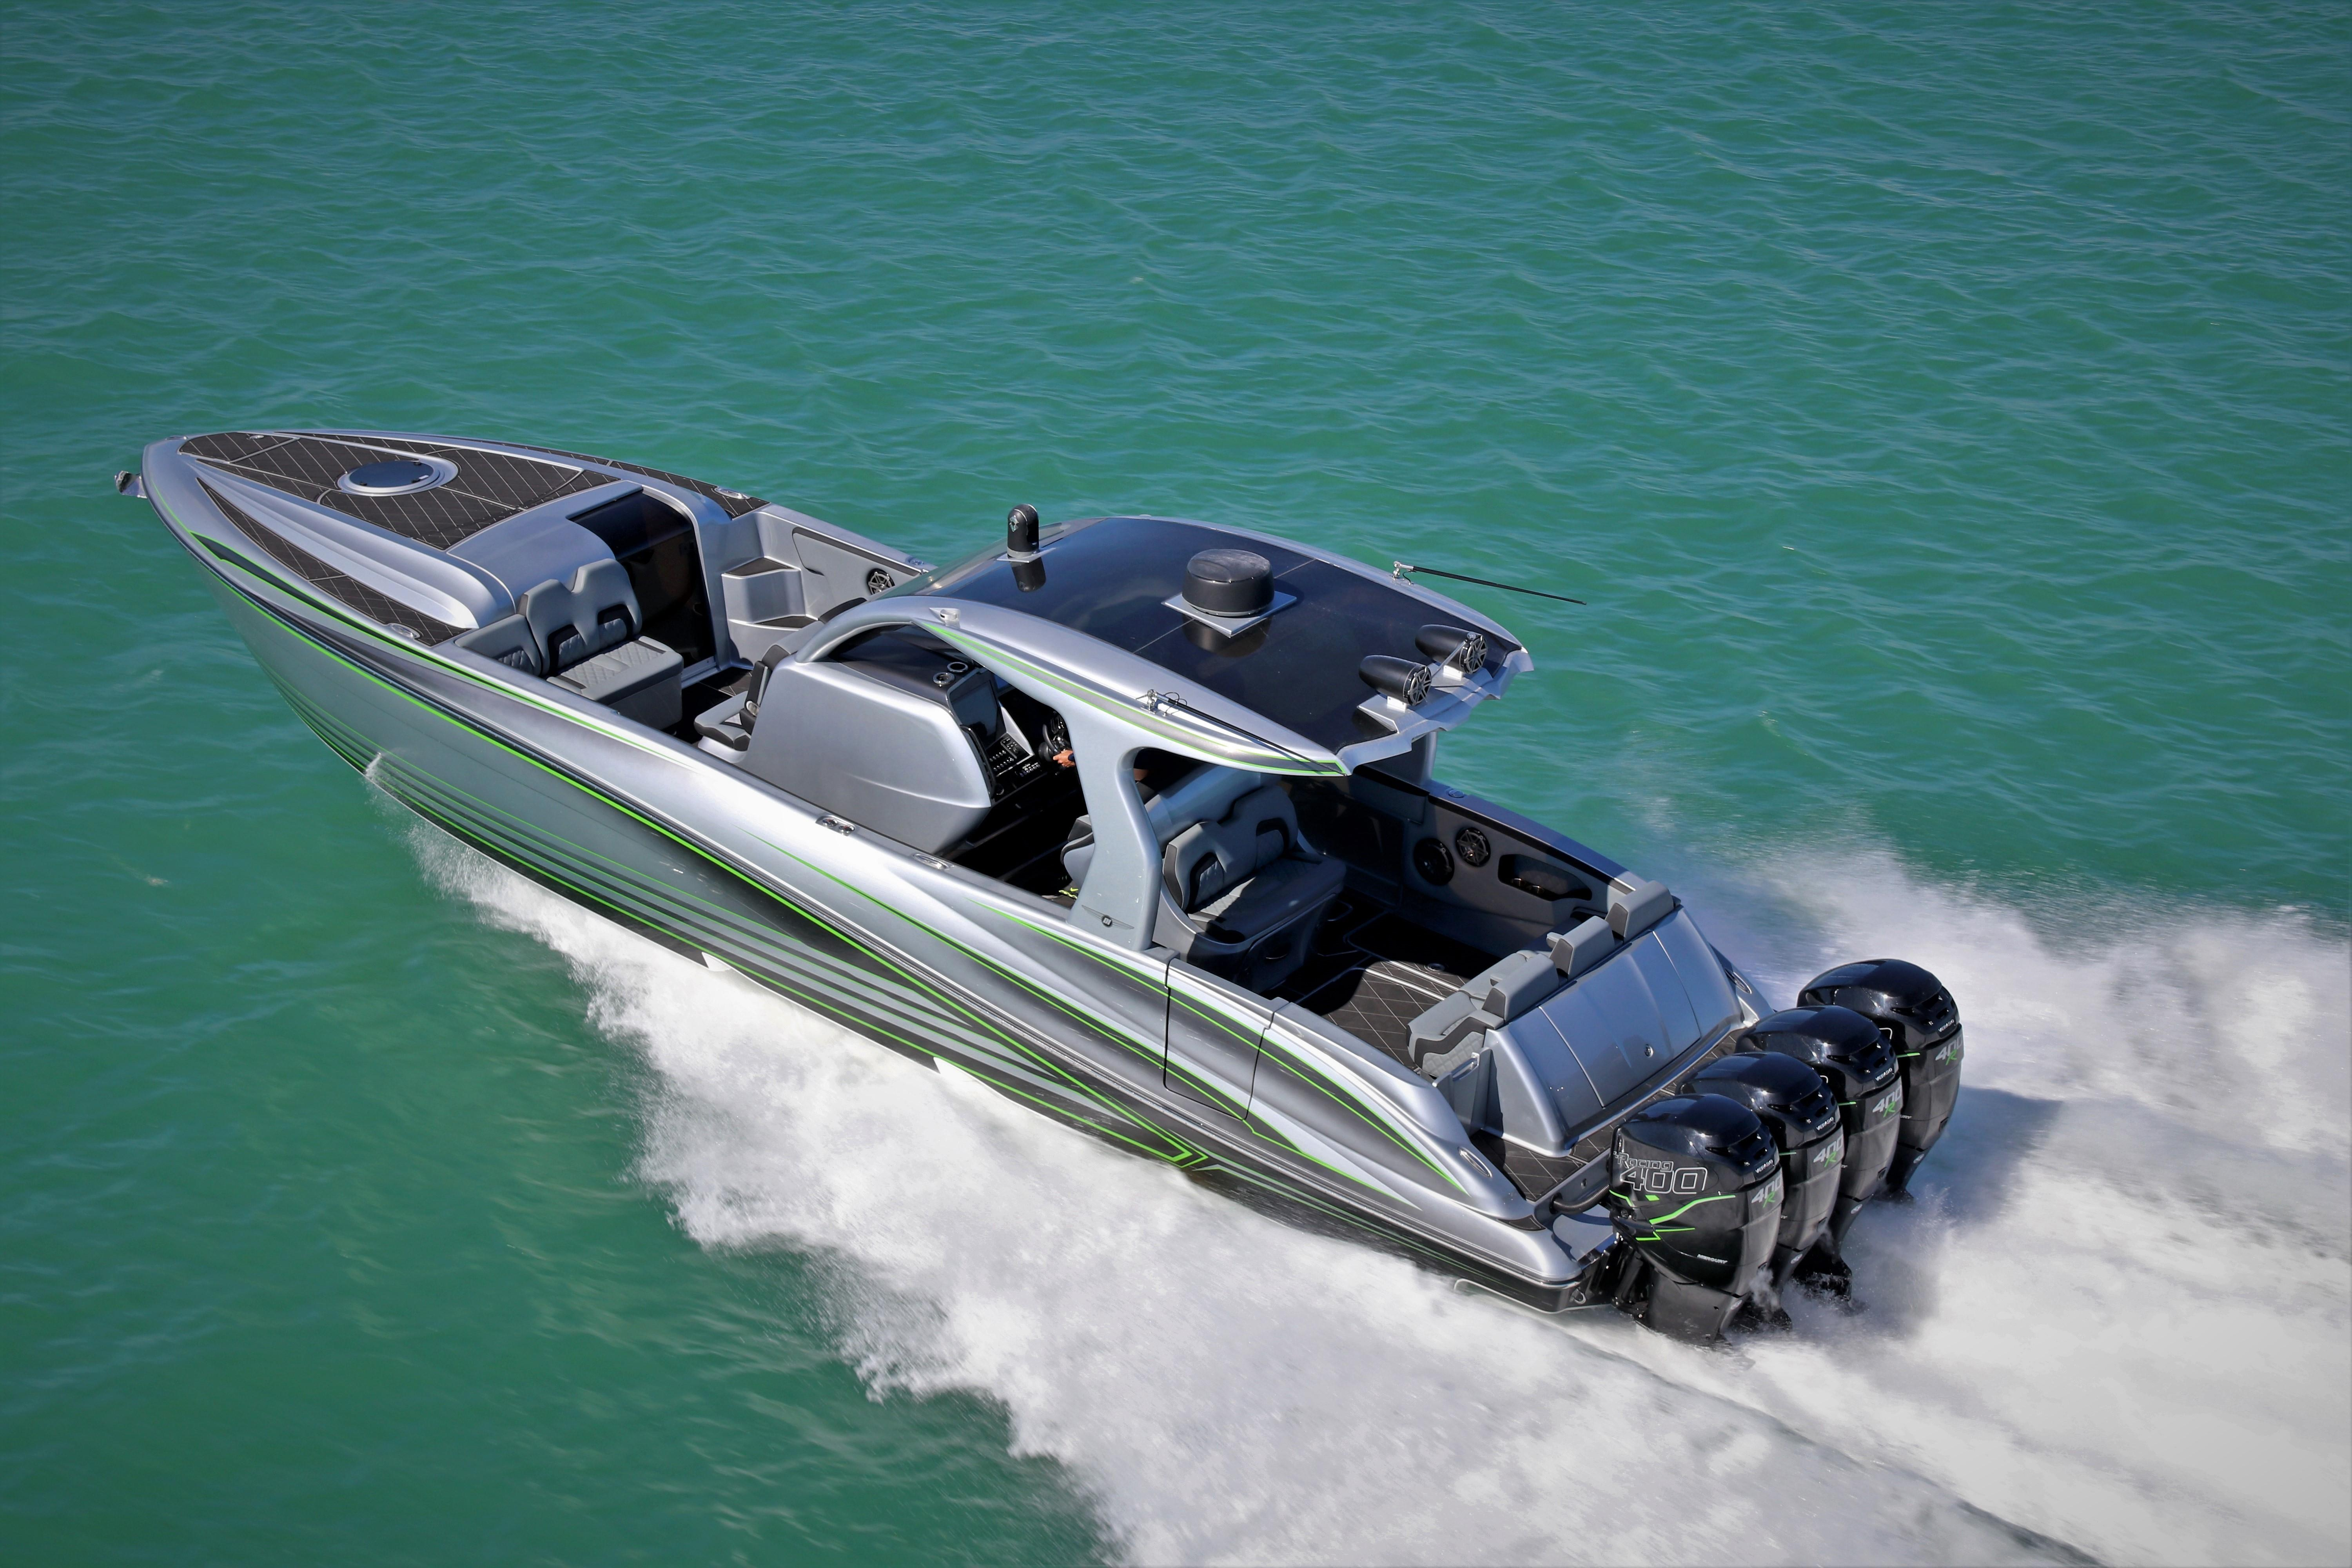 2018 Deep Impact 399 Cabin Power Boat For Sale